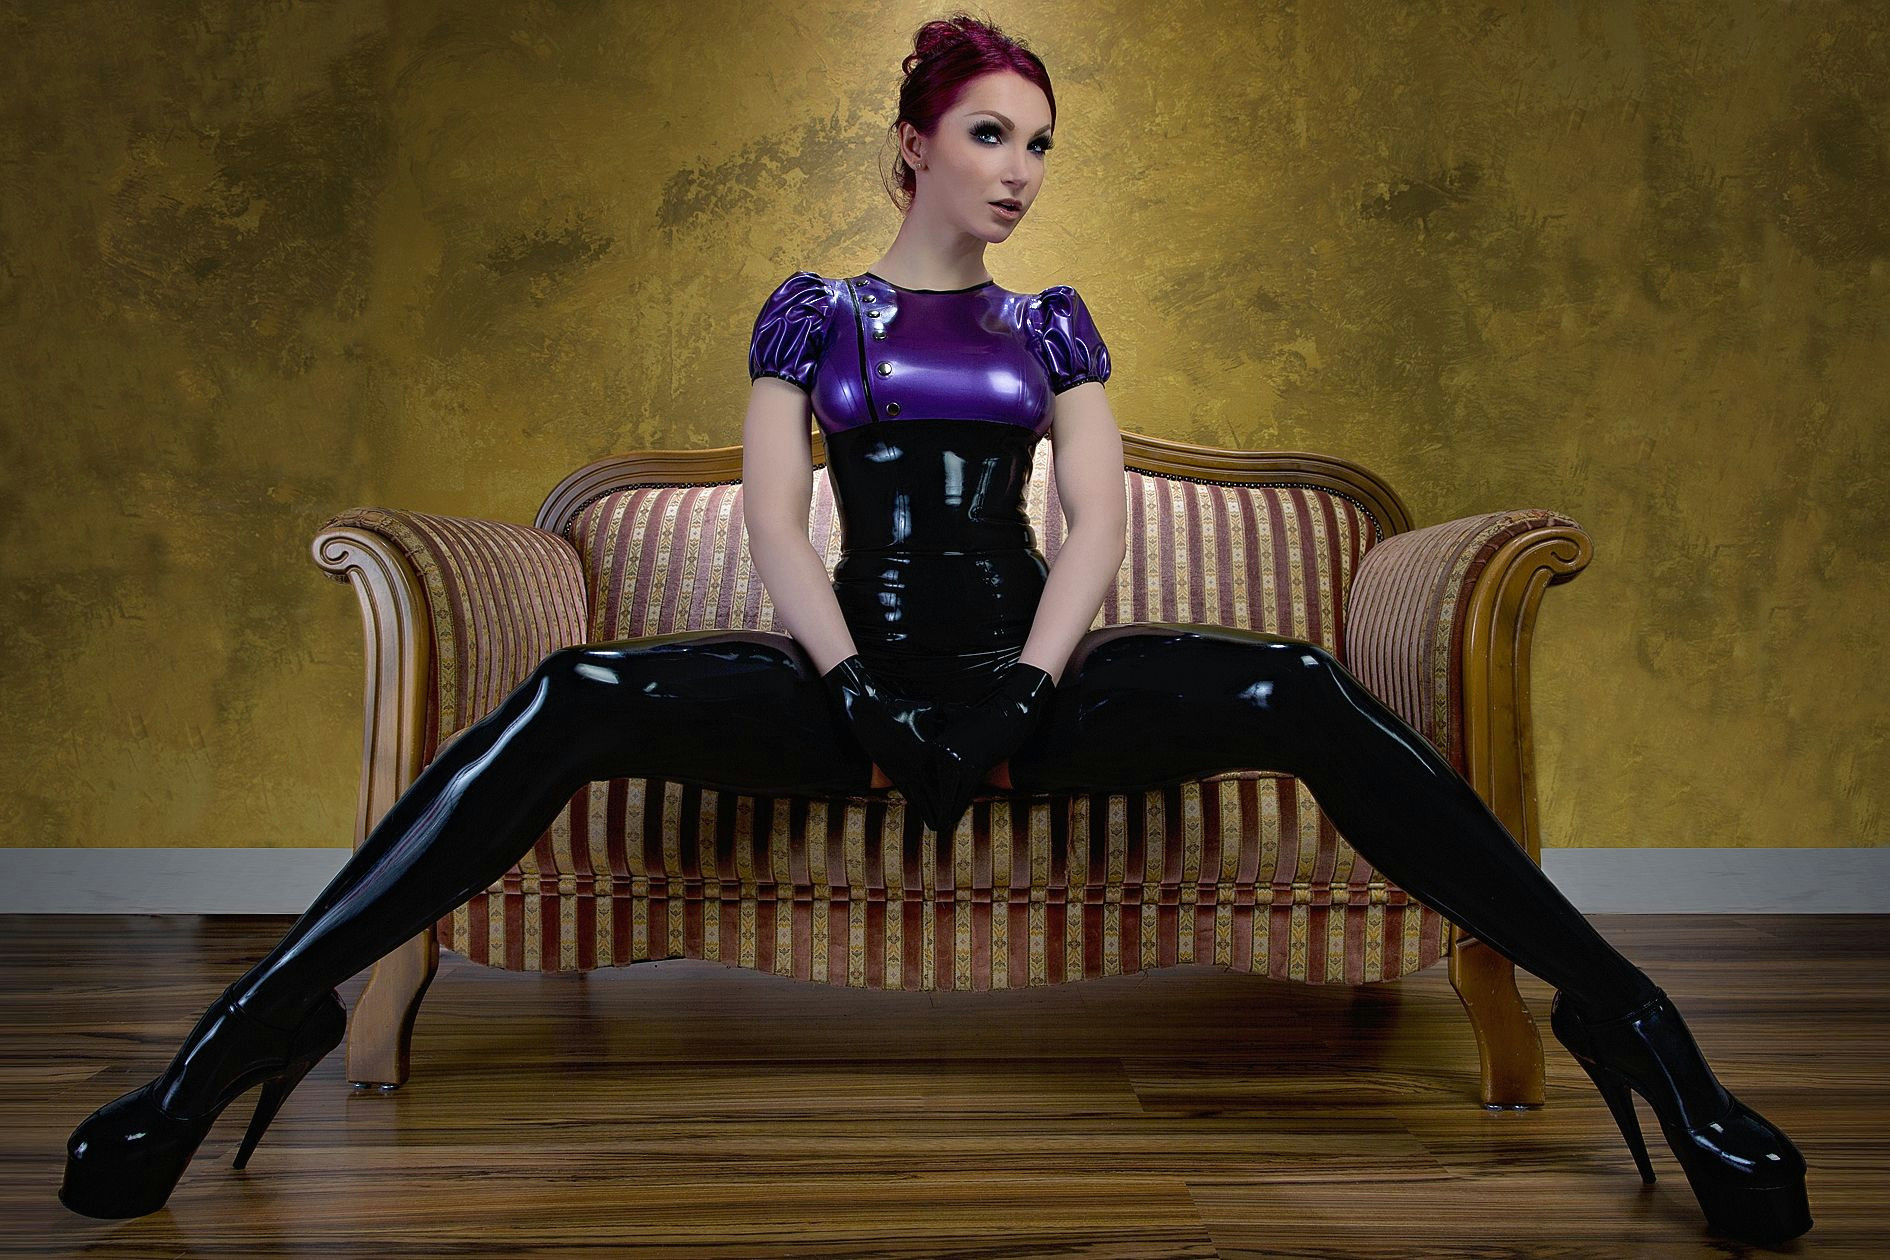 model susan wayland in latex by deadlotuscouture photo s m photography